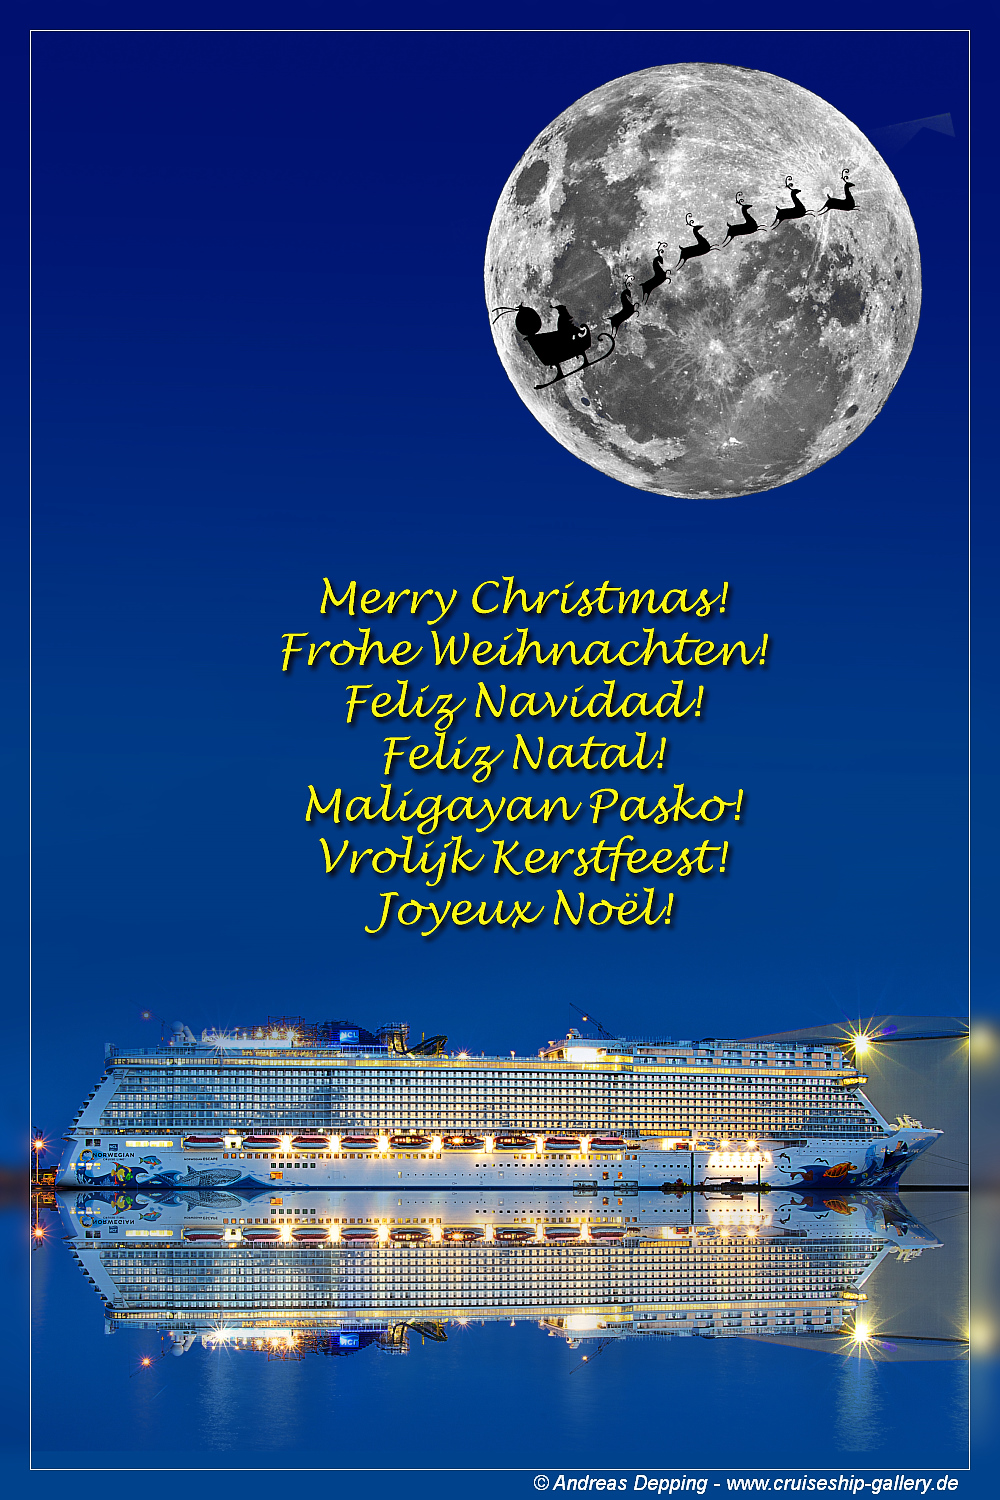 Dree Christmas Card For Ncl Fans Cruise Critic Message Board Forums